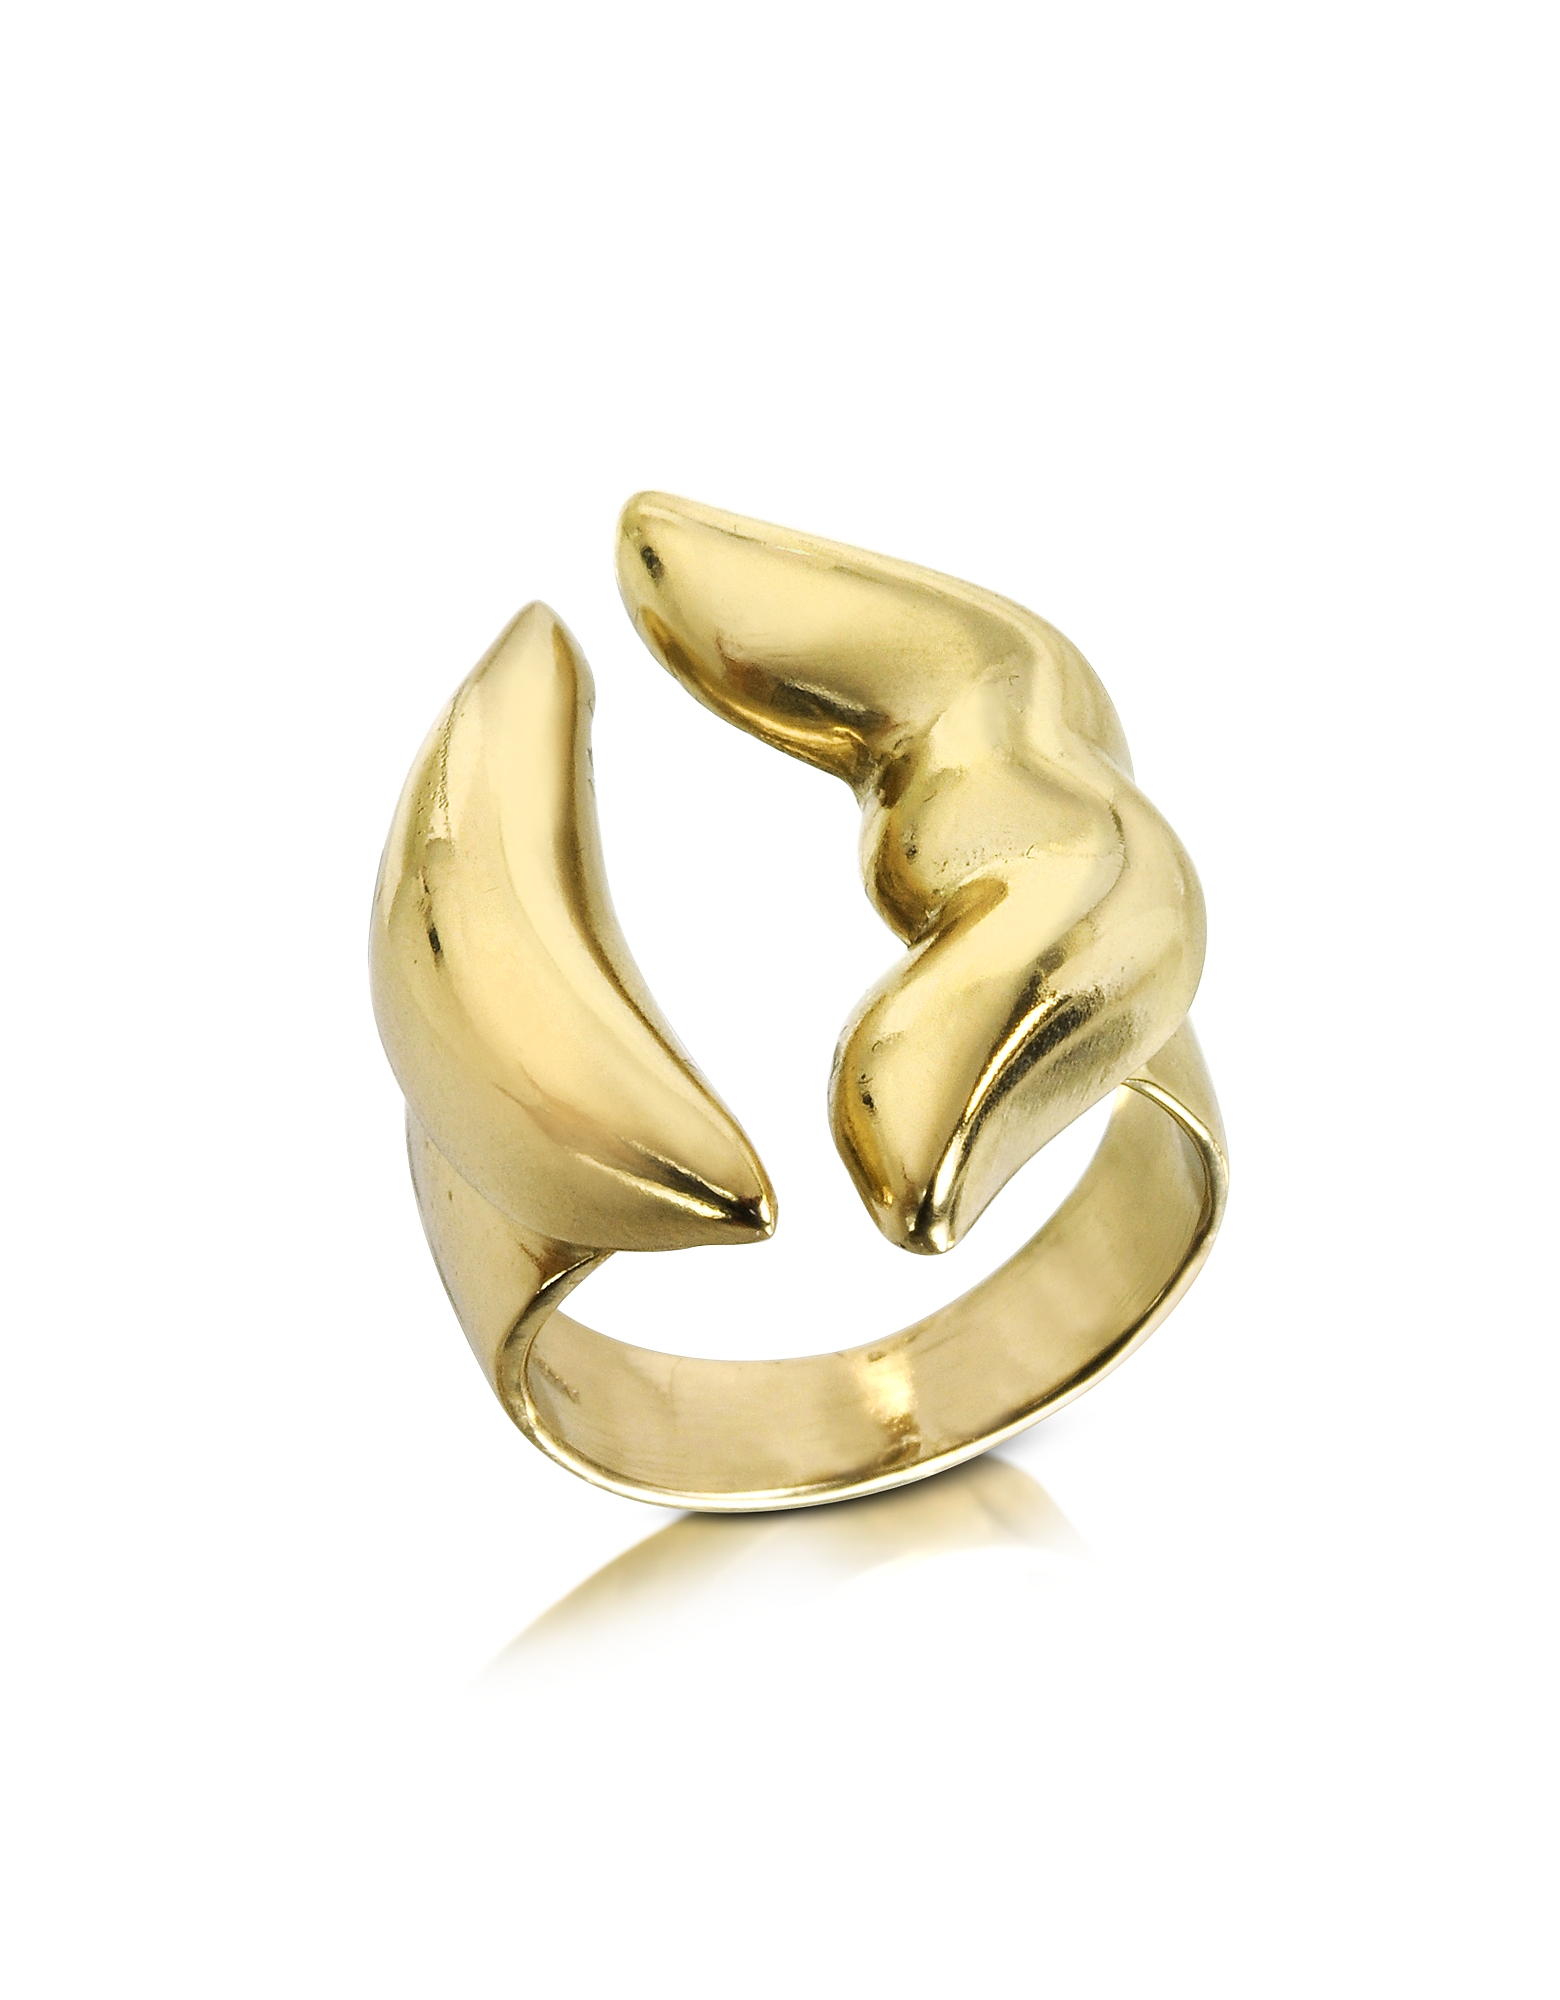 Bernard Delettrez Rings, Mouth Bronze Ring